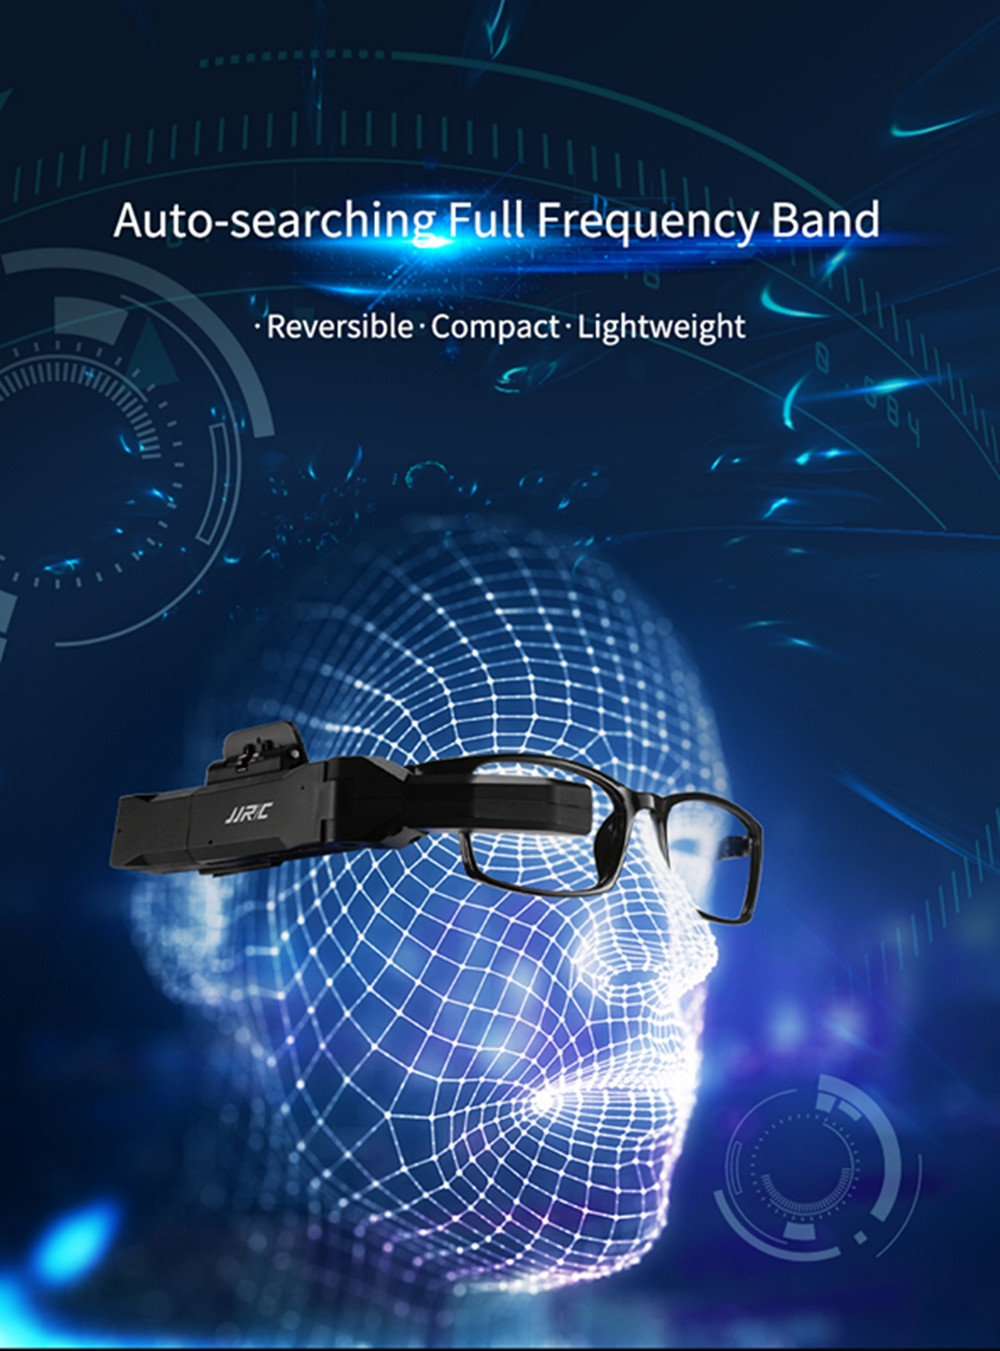 JJRC FPV-003 5.8GHz 40CH Full Frequency Band Auto-searching FPV Goggles Monocular Glasses w/ Battery